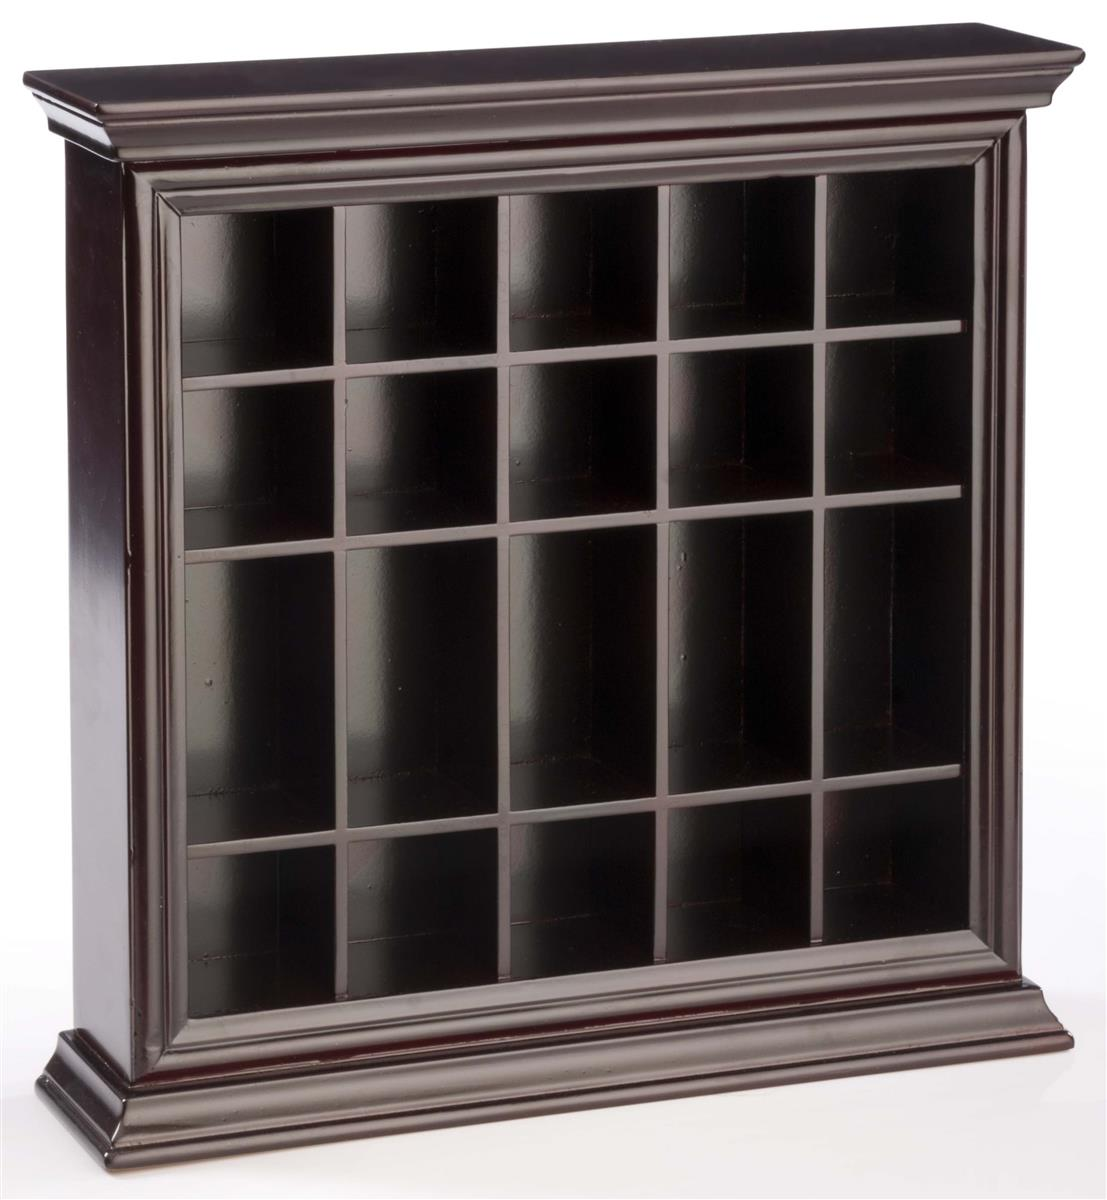 #736258 Shot Glass Cabinet Mahogany Wooden Countertop Or Wall  with 1107x1200 px of Best Glass Display Cabinets Prestons 12001107 image @ avoidforclosure.info